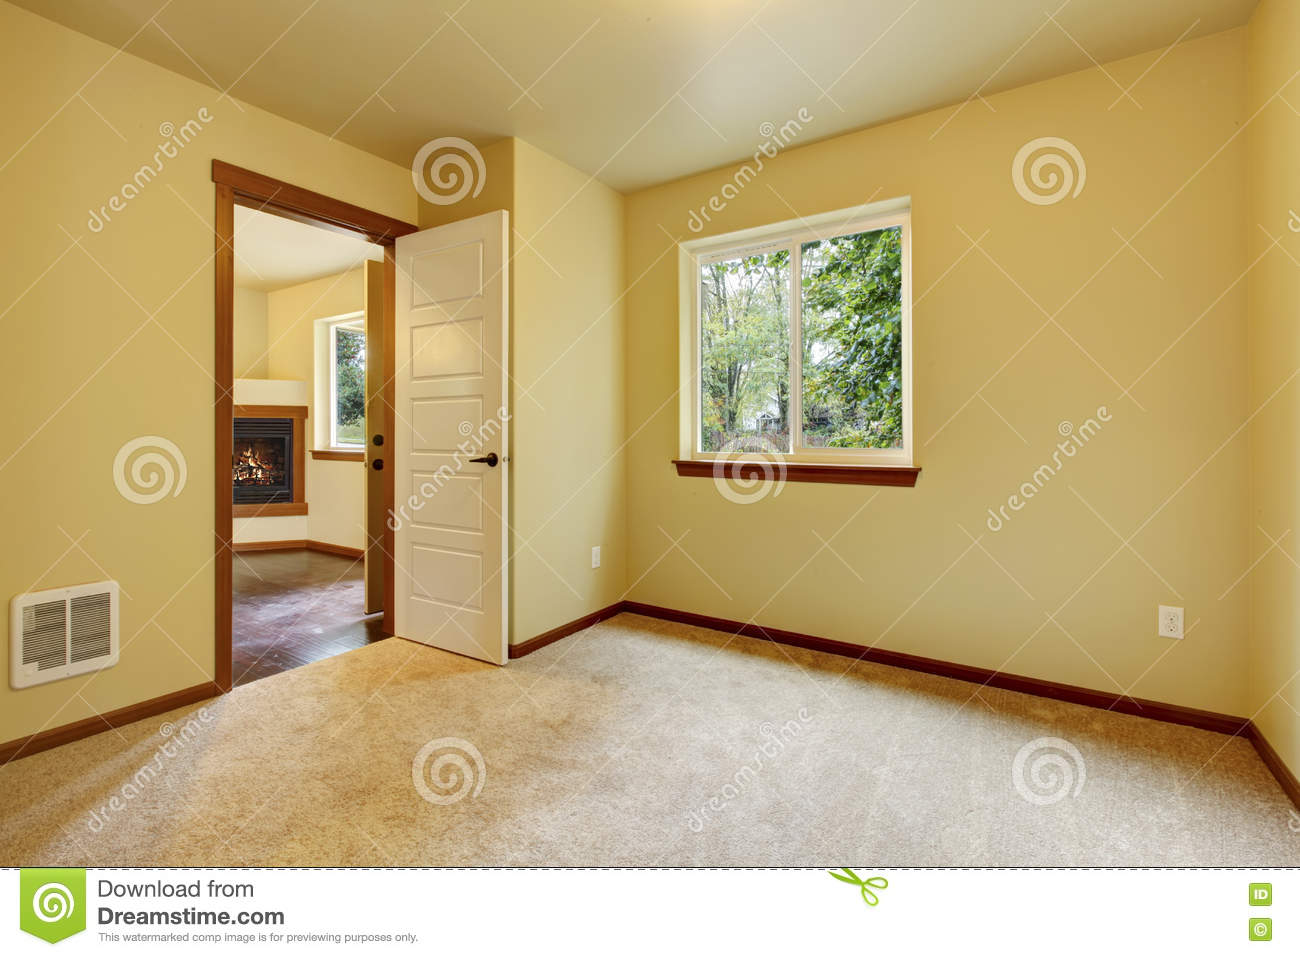 Bright Small Empty Room With Carpet Floor And Ivory Walls